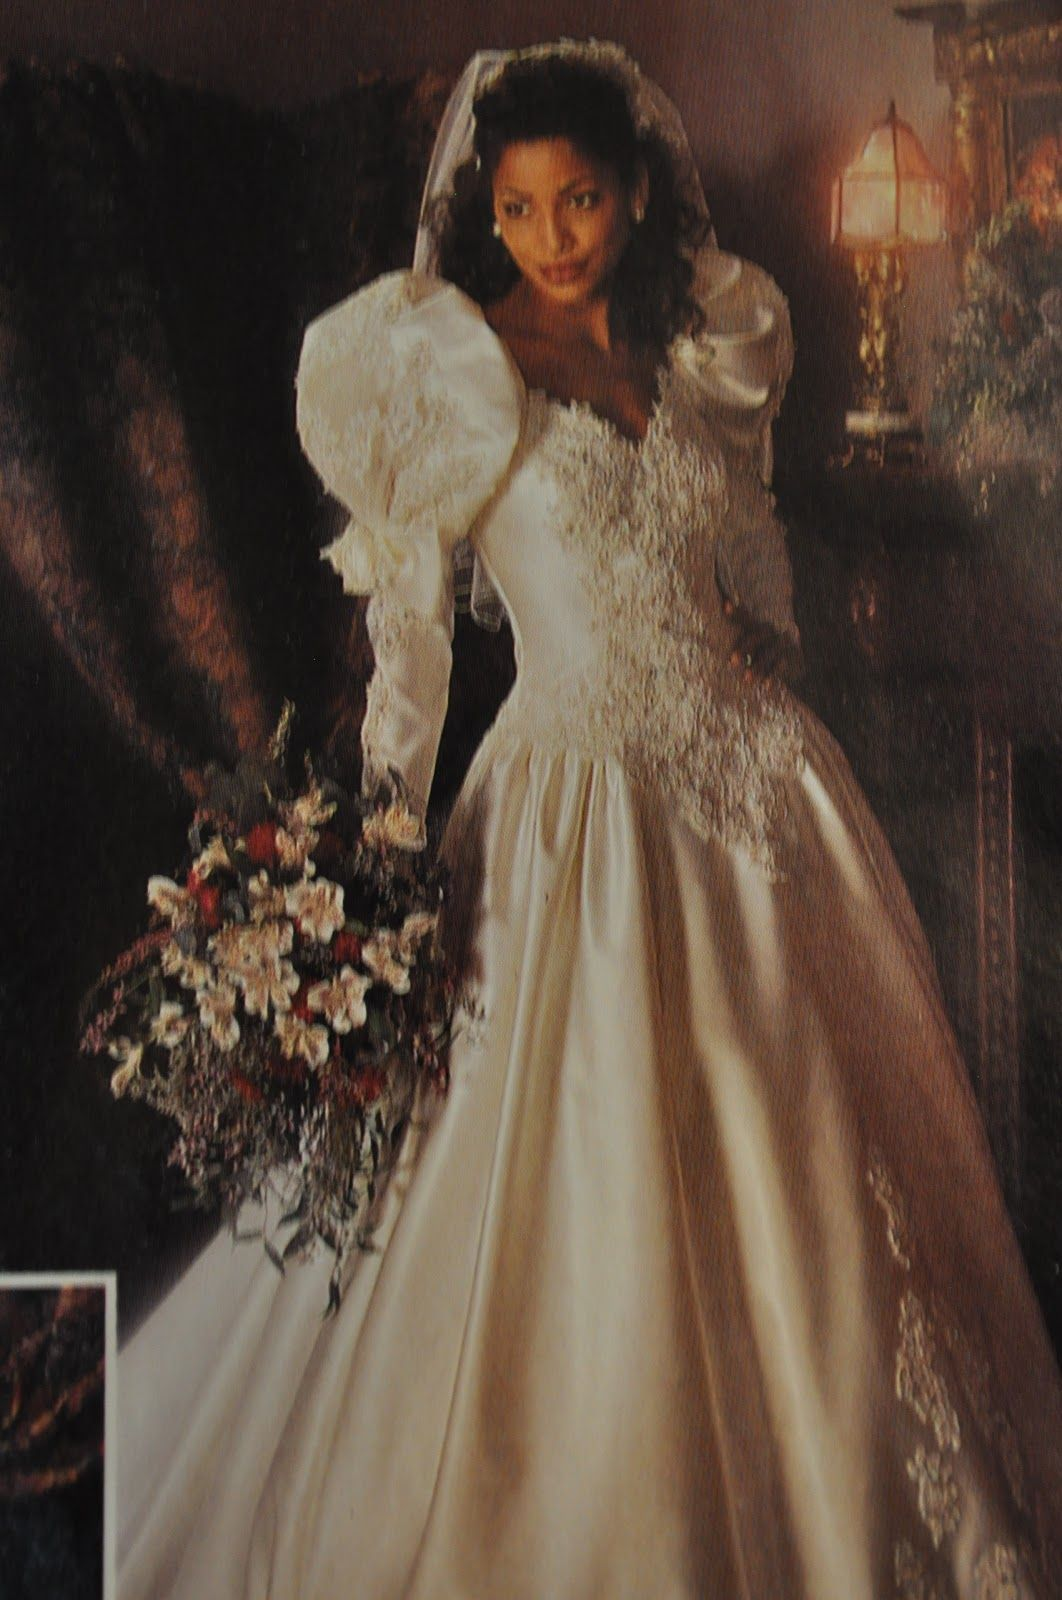 80's wedding gowns | Look at her Puffy sleeves! This wedding dress ...